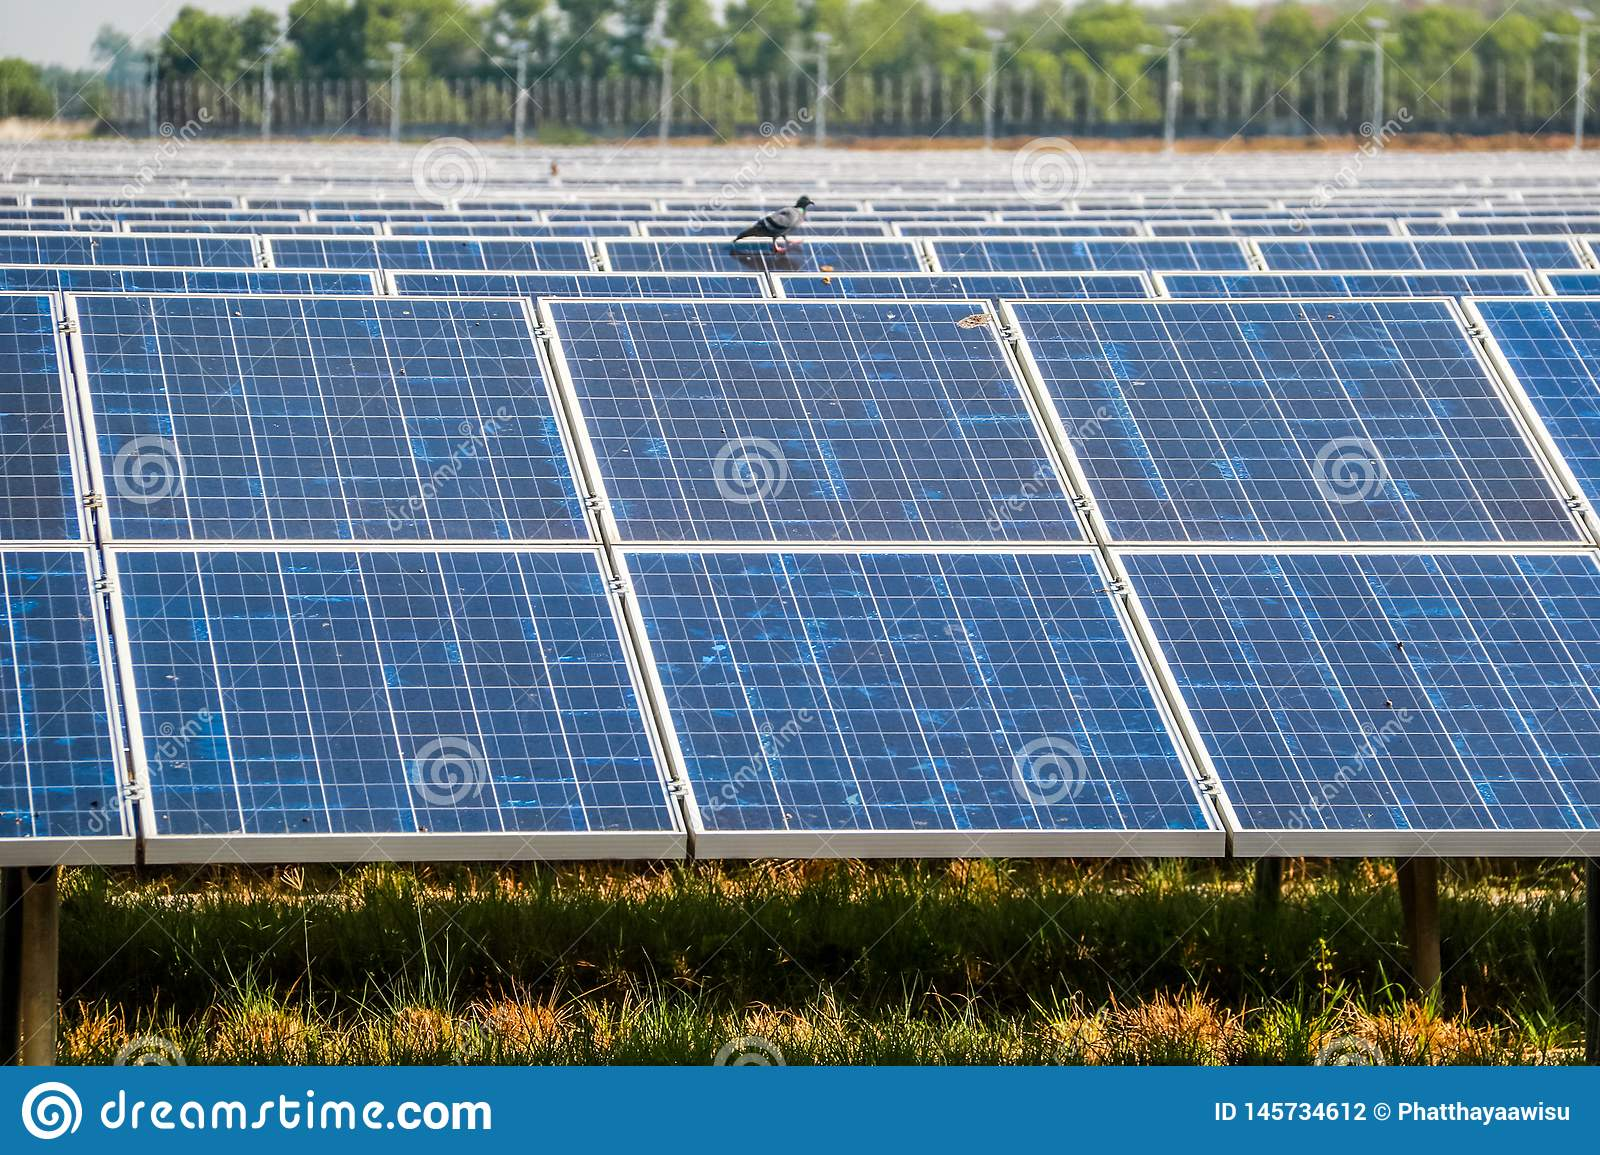 Solar panel generating electricity clean energy